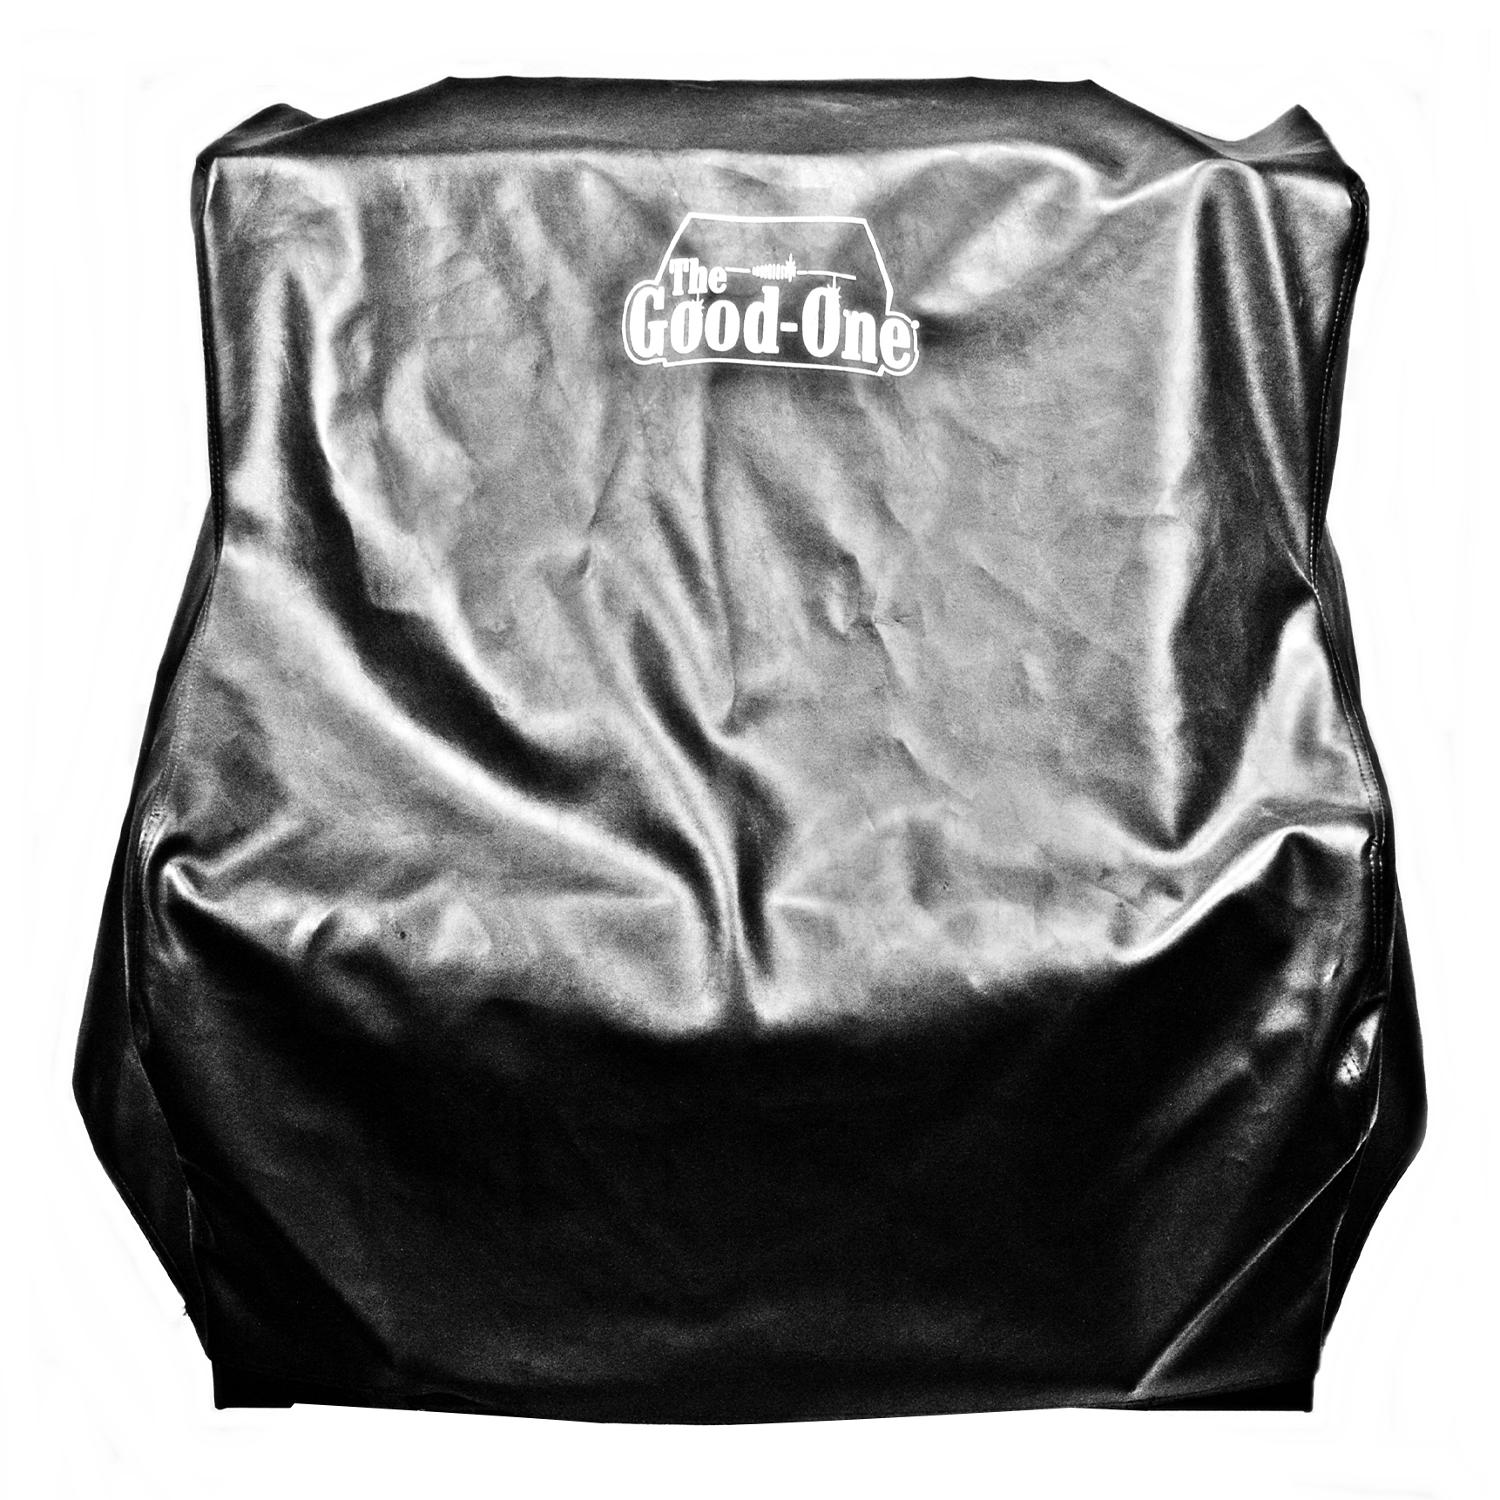 The Good-One Marshall Gen III 38-Inch Freestanding Charcoal Smoker Cover